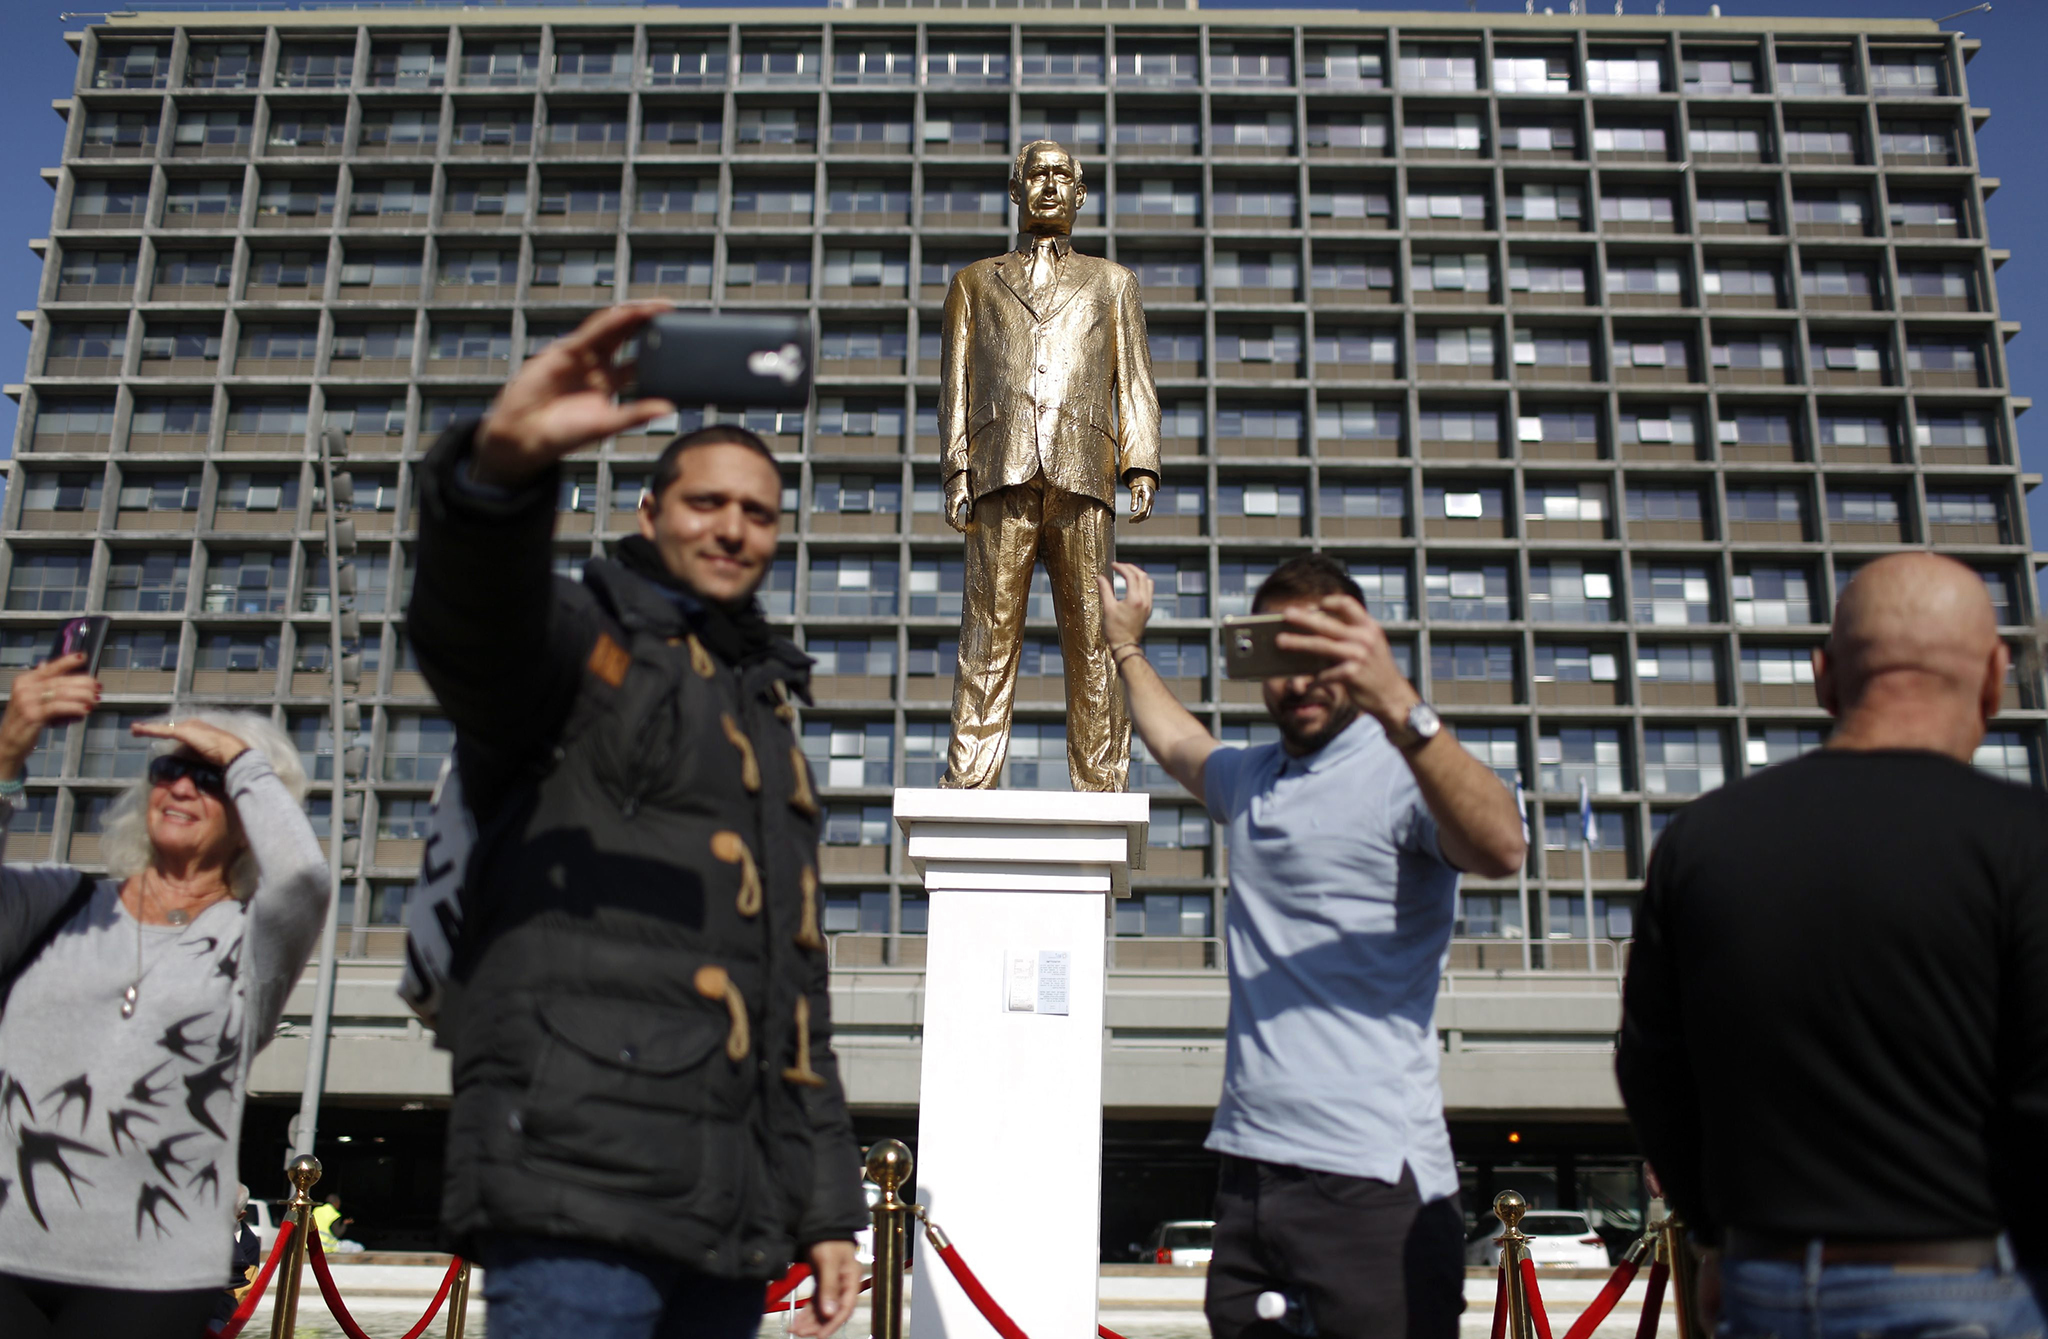 Israelis take pictures of a golden statue  depicting Israeli Prime Minister Benjamin Netanyahu on Rabin Square in Tel Aviv, Israel, 06 December 2016. The statue was installed overnight by Israeli artist Itay Zalait, as a political statement against PM Netanyahu.  EPA/ABIR SULTAN